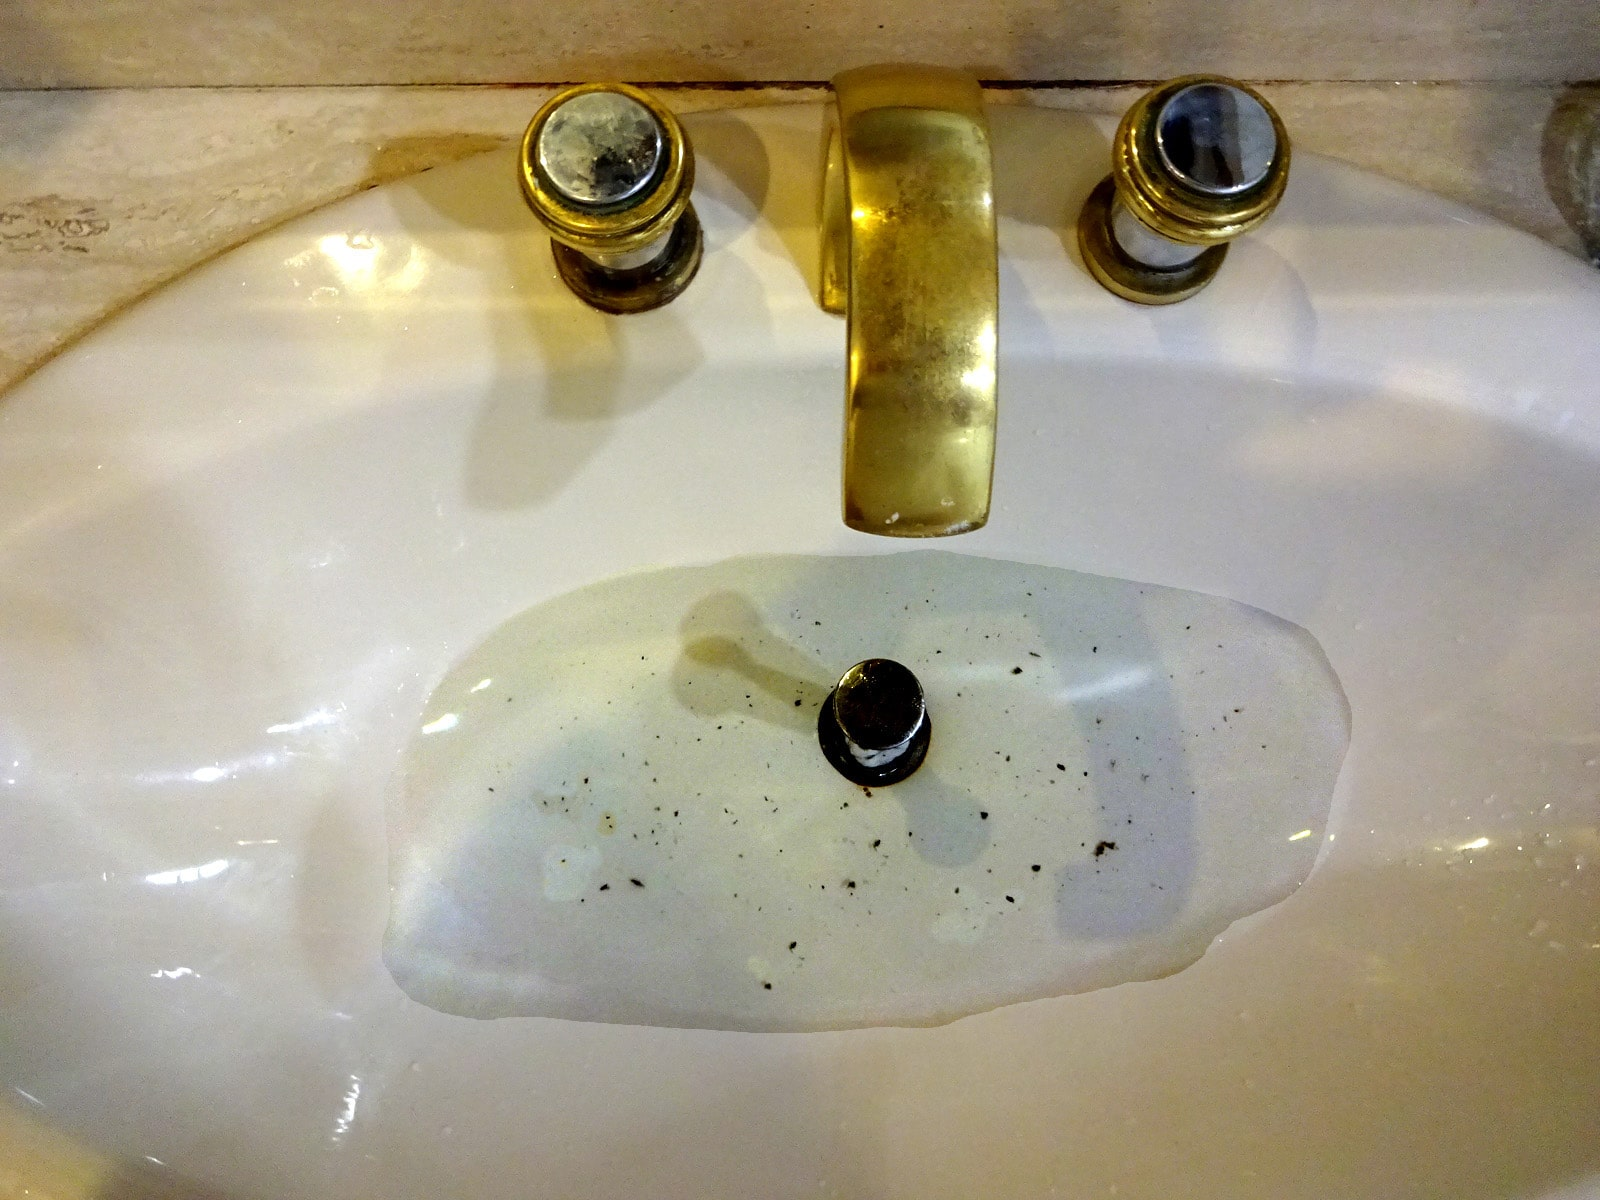 A Clogged Sink Has Many Causes